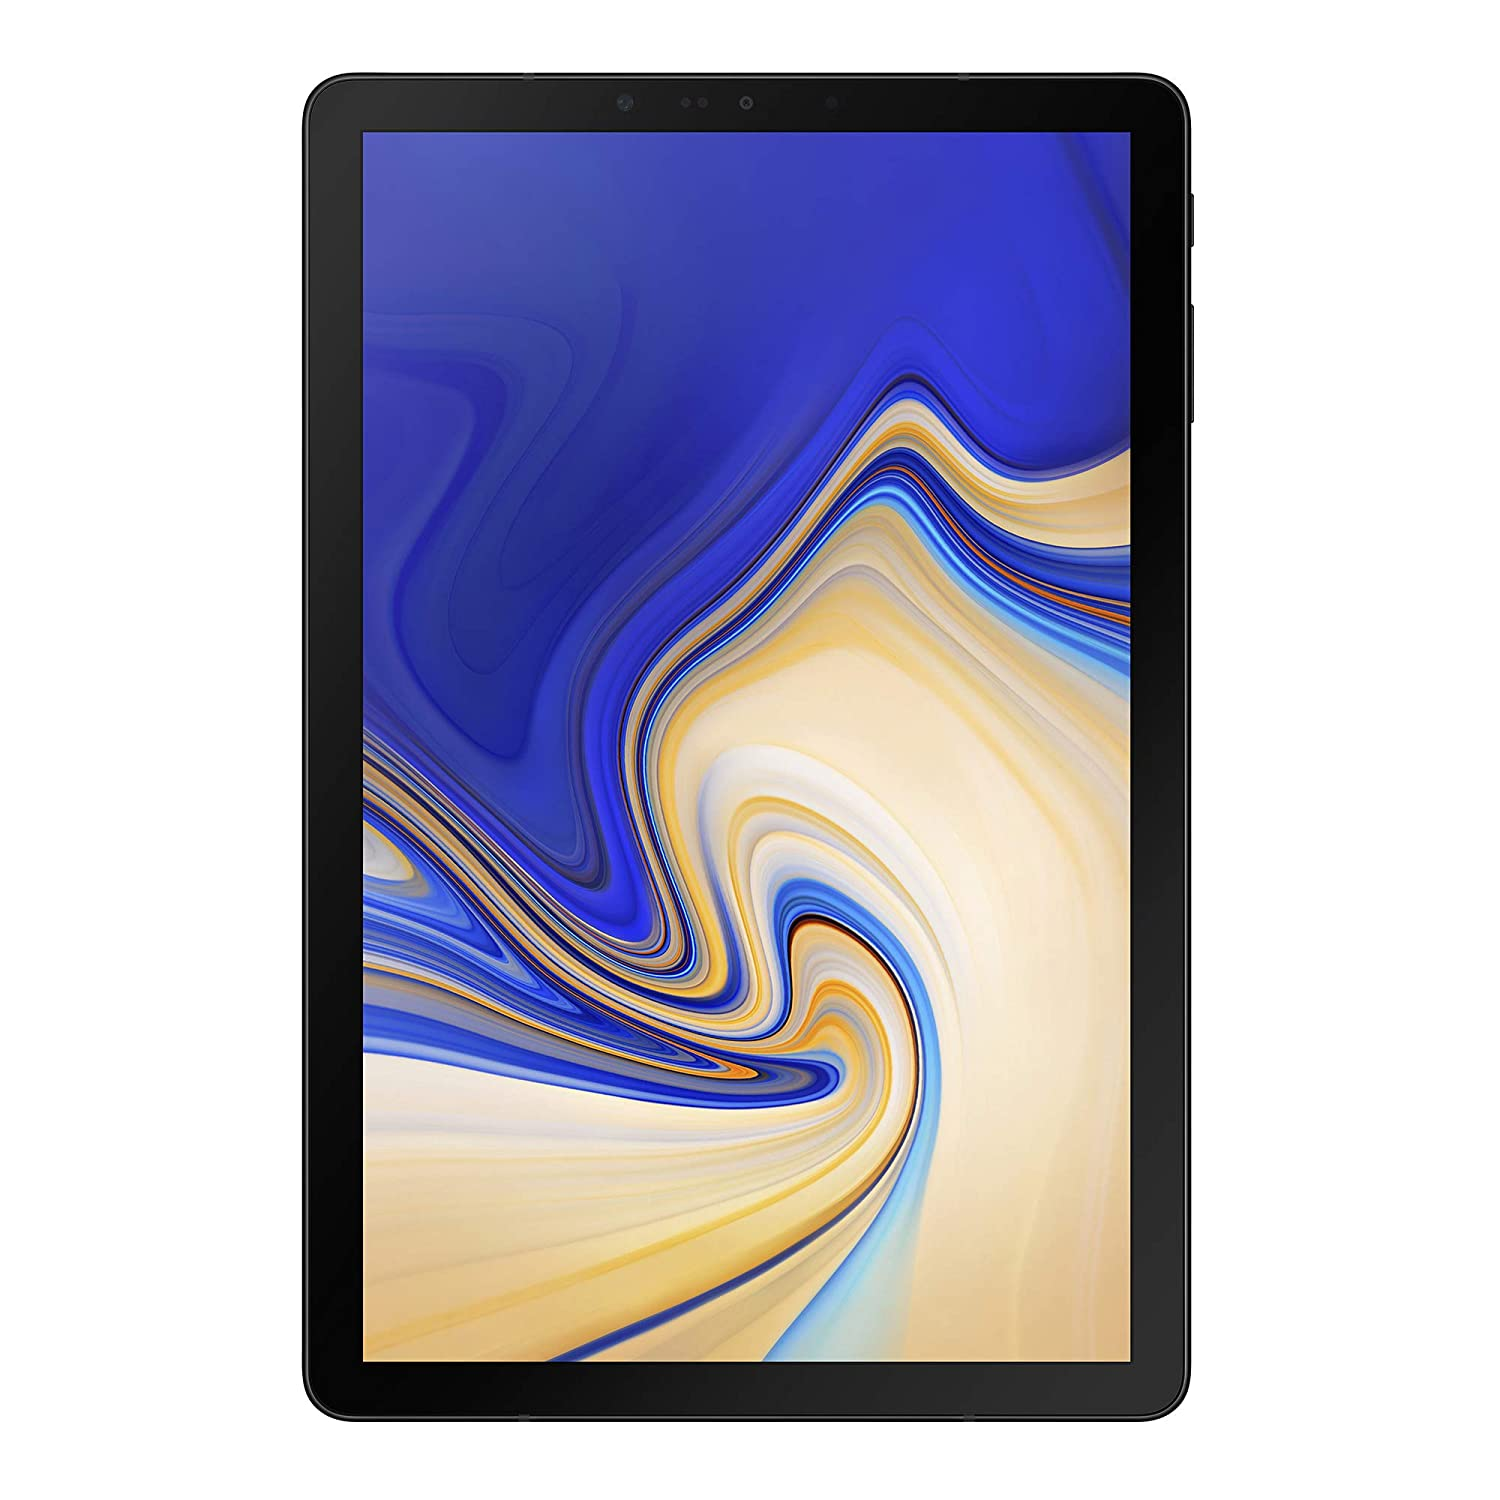 Samsung Galaxy Tab S4 Tablet, 10.5, 64 GB Espandibili, WIFI, Nero [Versione Italiana]